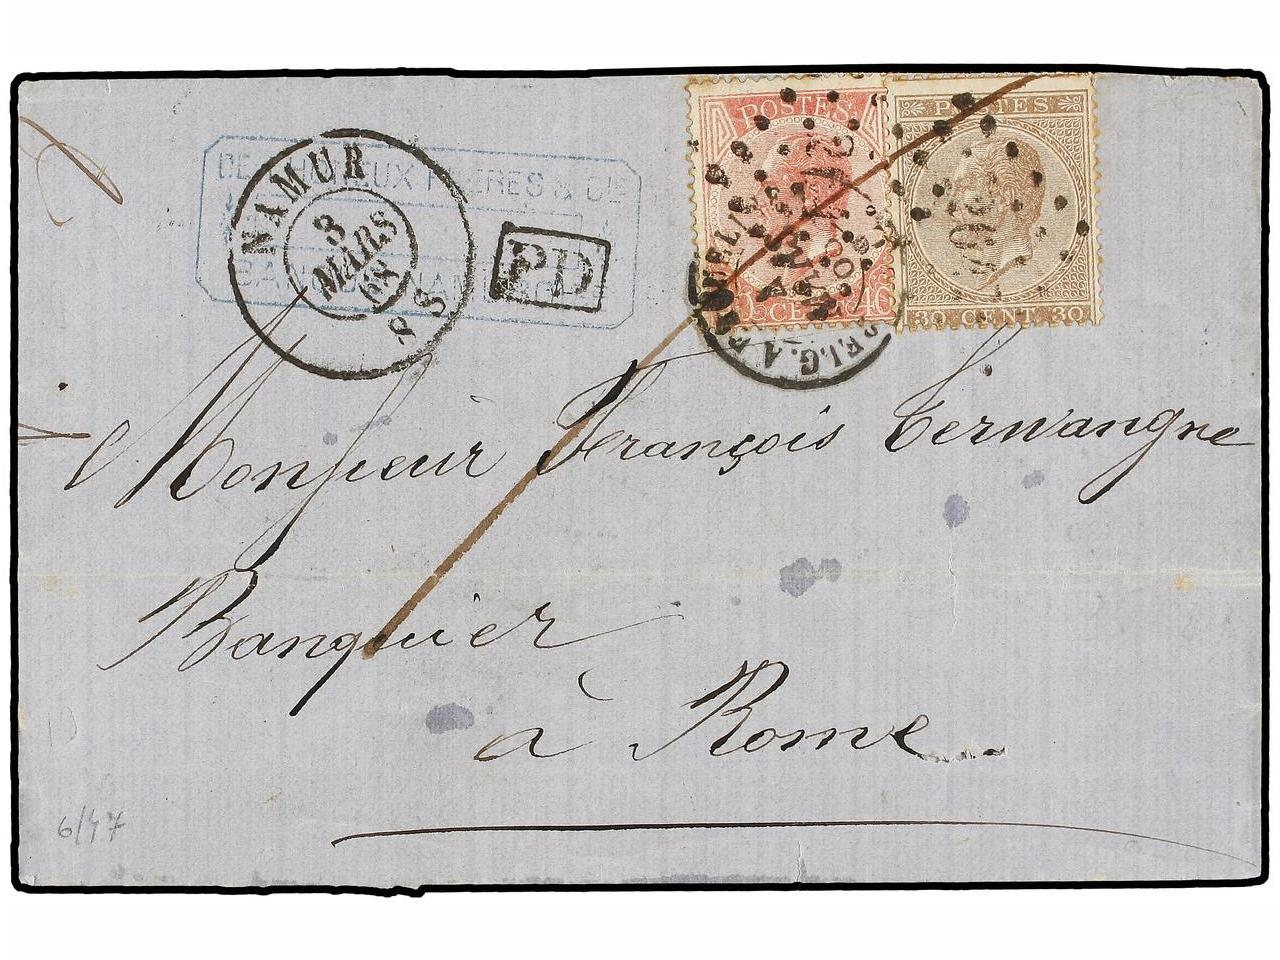 ✉ BELGICA. 1868. NAMUR to ROME. Folded letter franked with 3